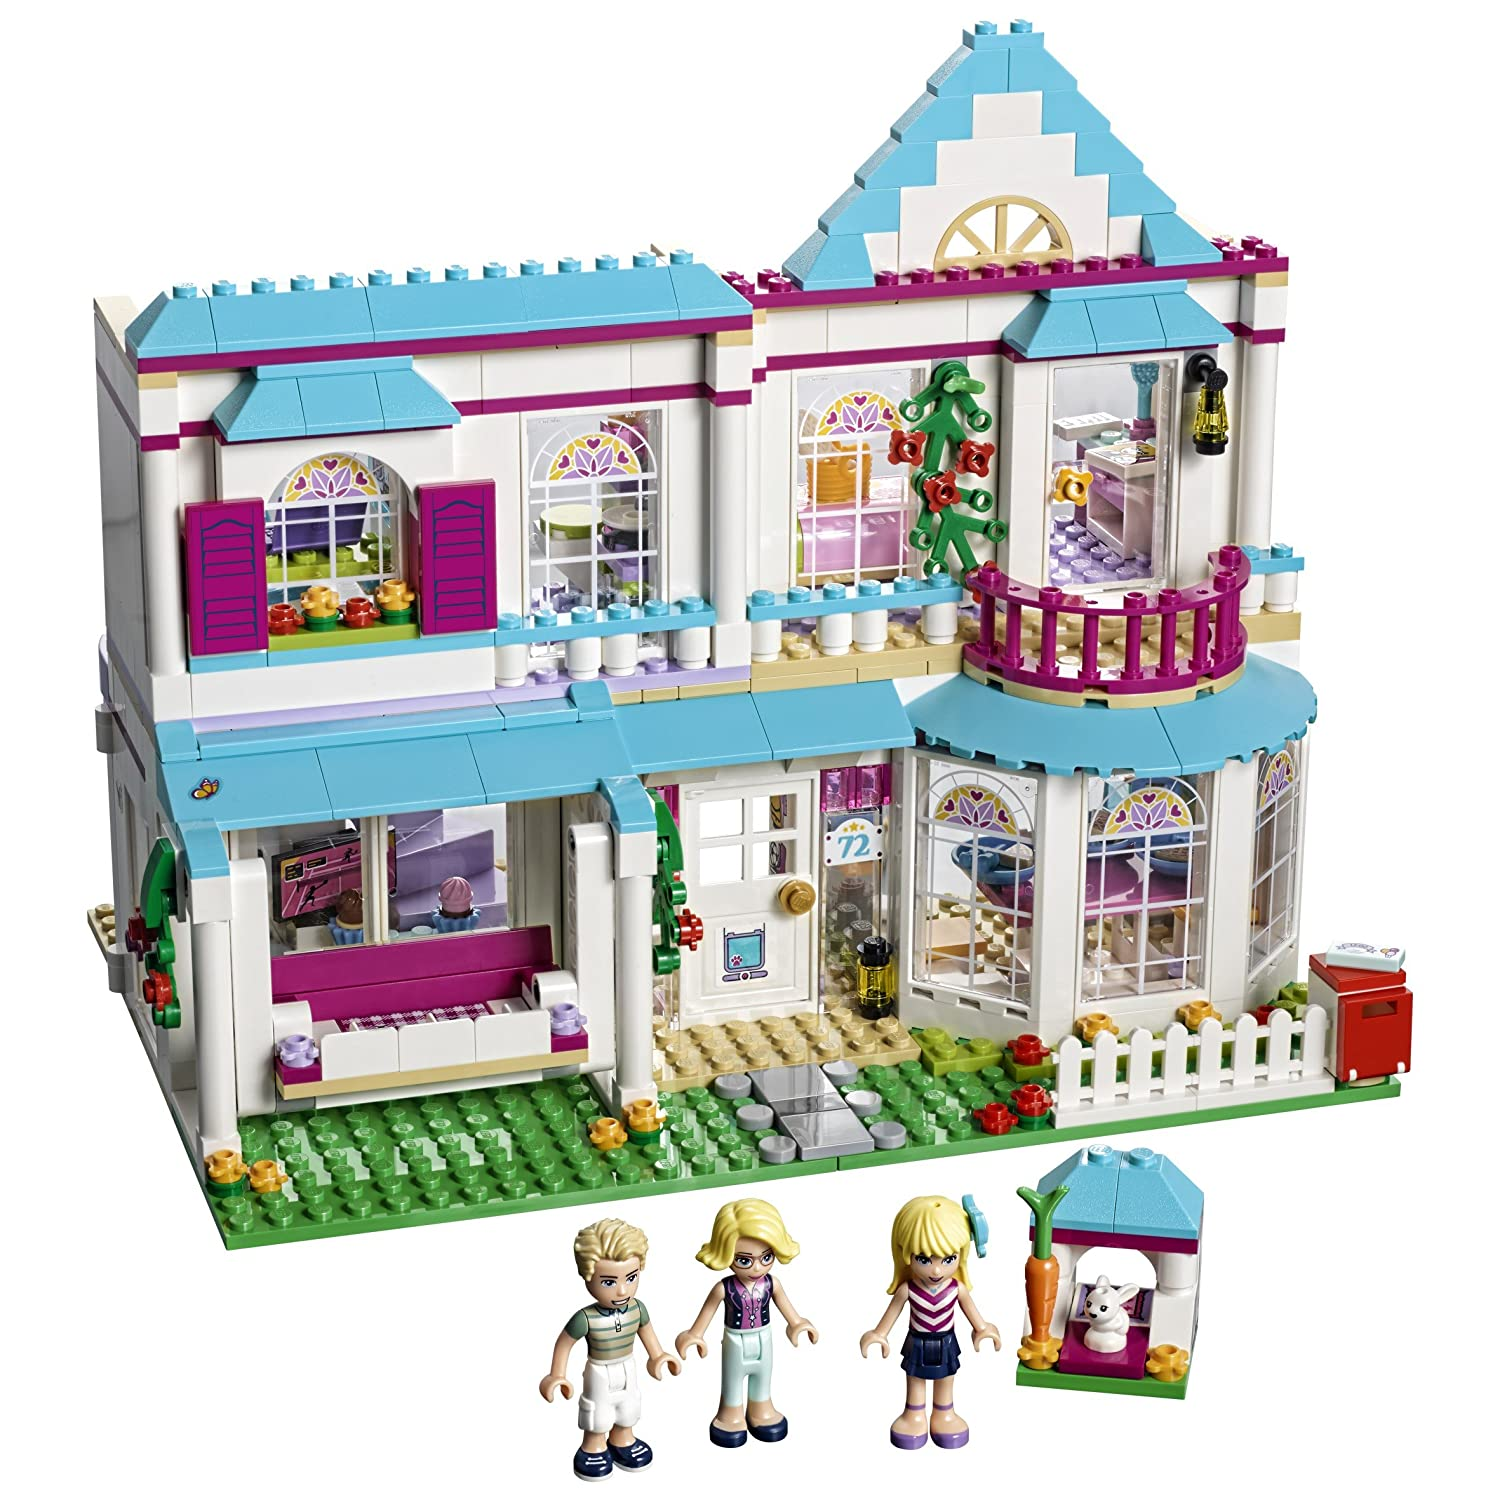 Lego Haus - LEGO Friends Stephanies Haus